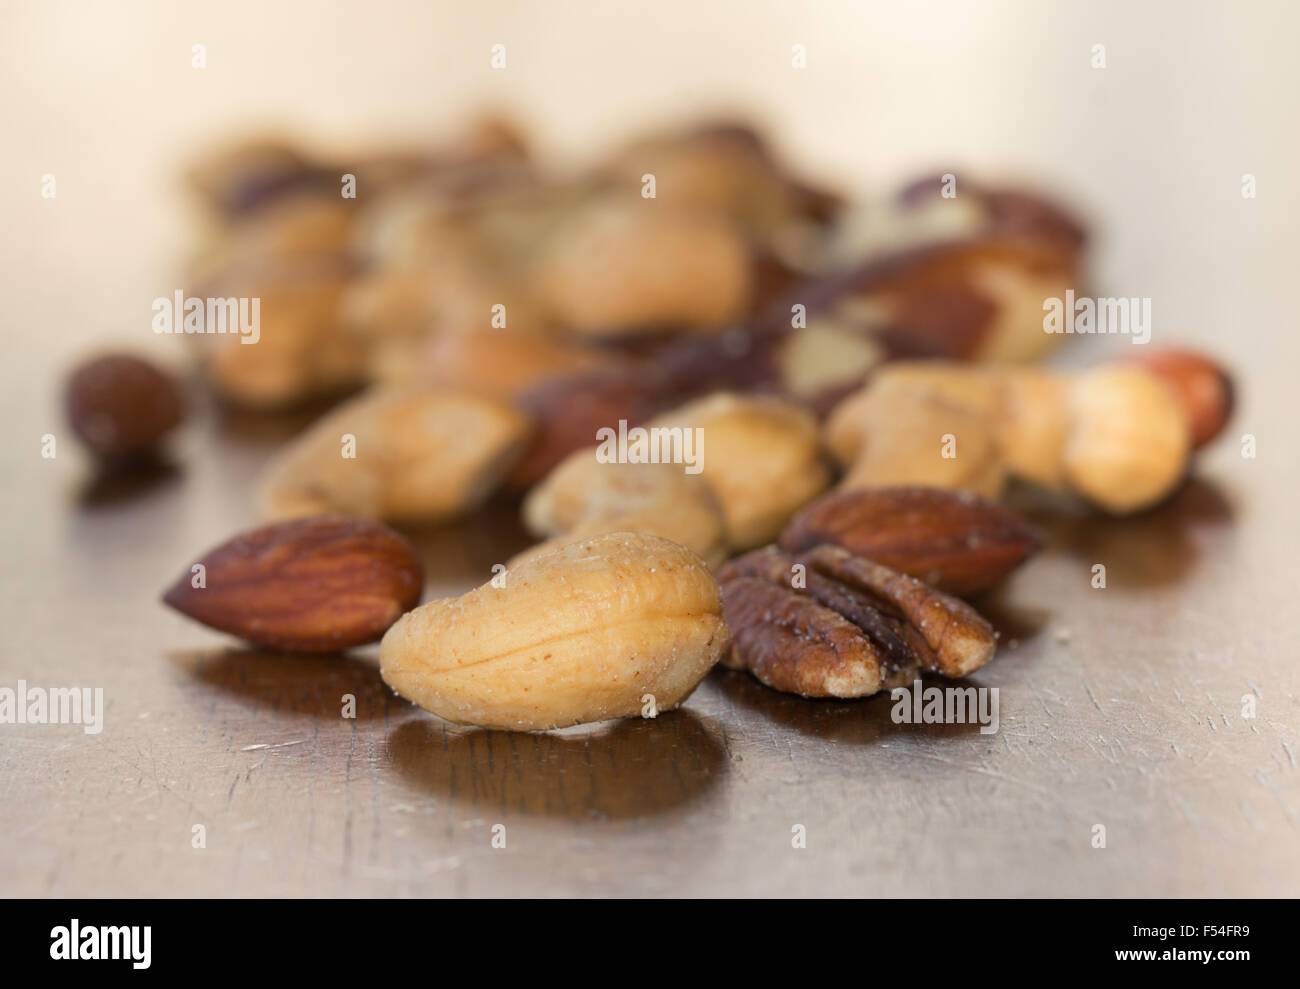 Mixed nuts on a rustic wooden table - Stock Image